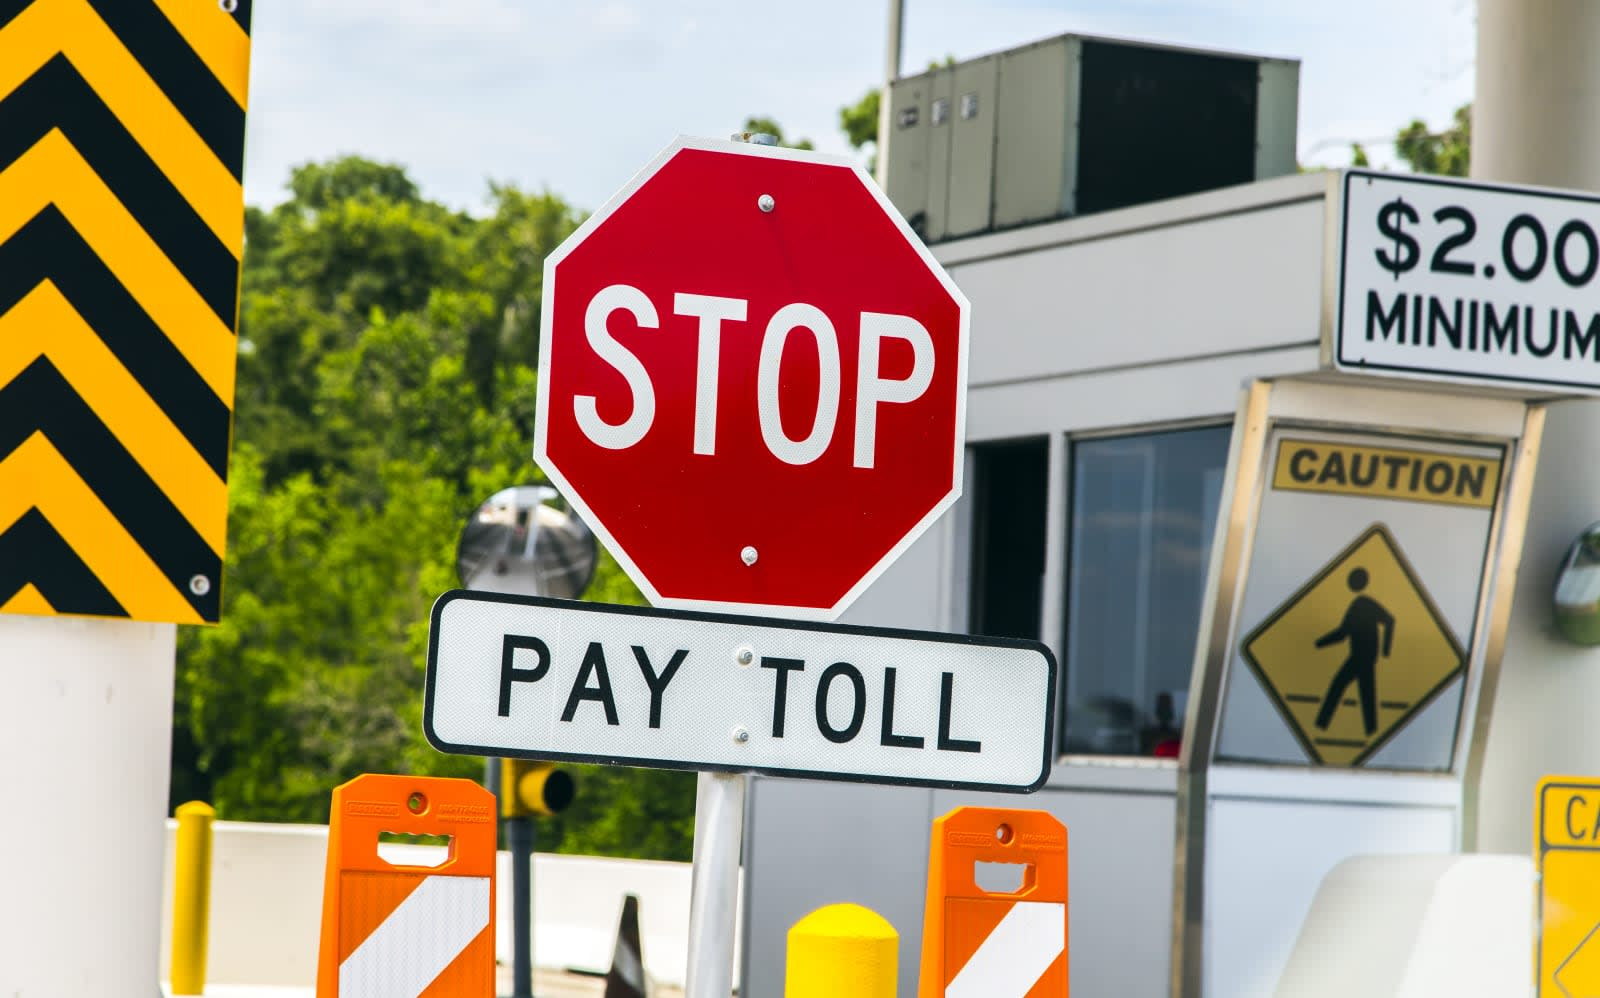 Waze shows how much you have to pay at the tollgate